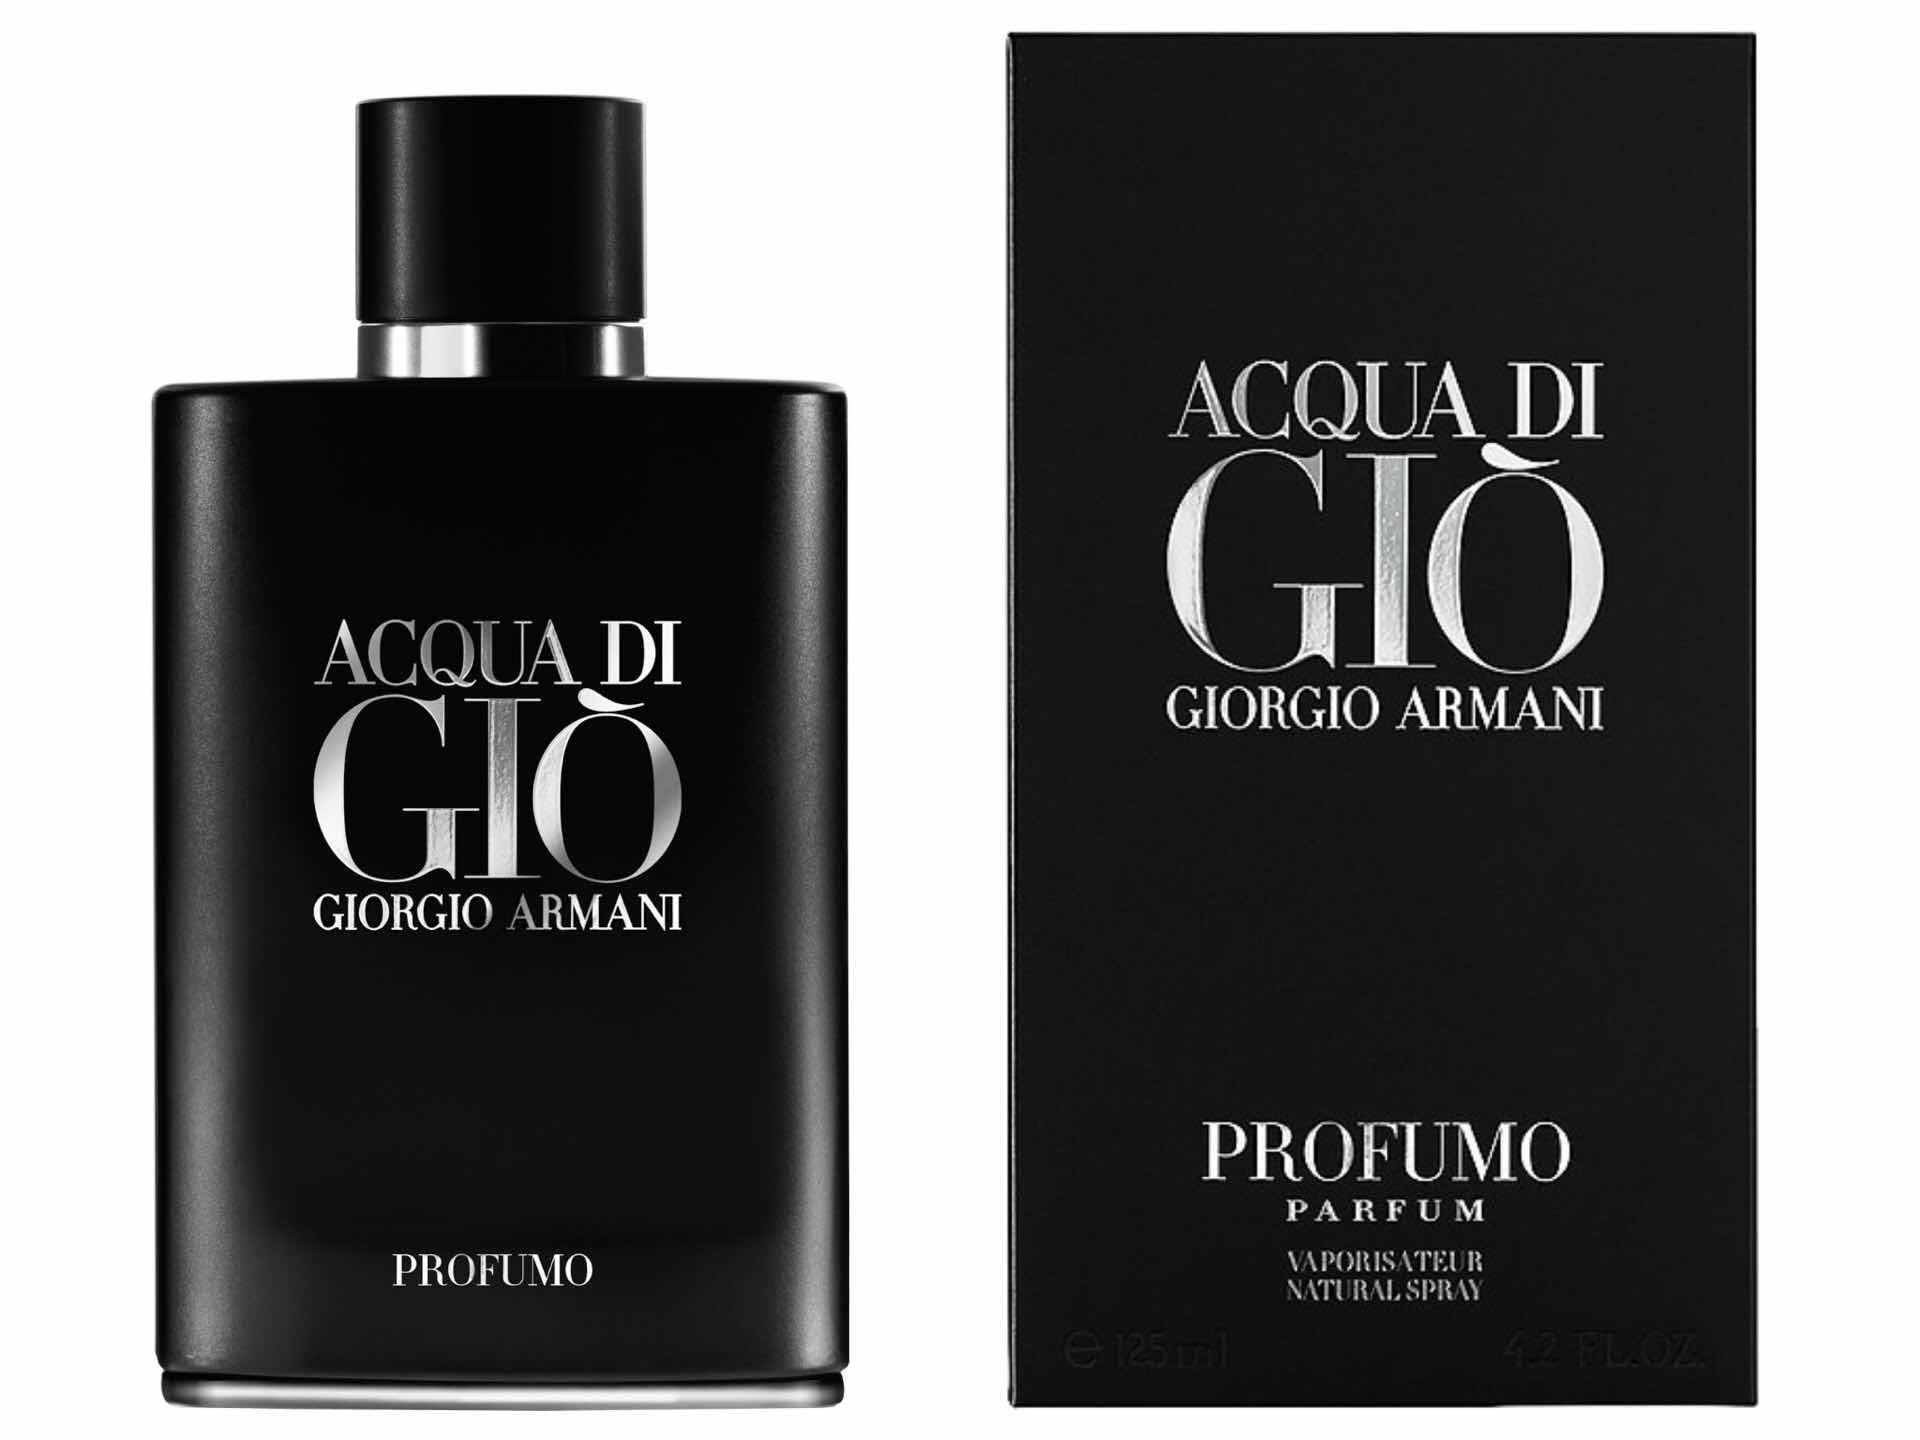 Acqua di Gi Profumo cologne. ($96 for 4.2 fl oz bottle)